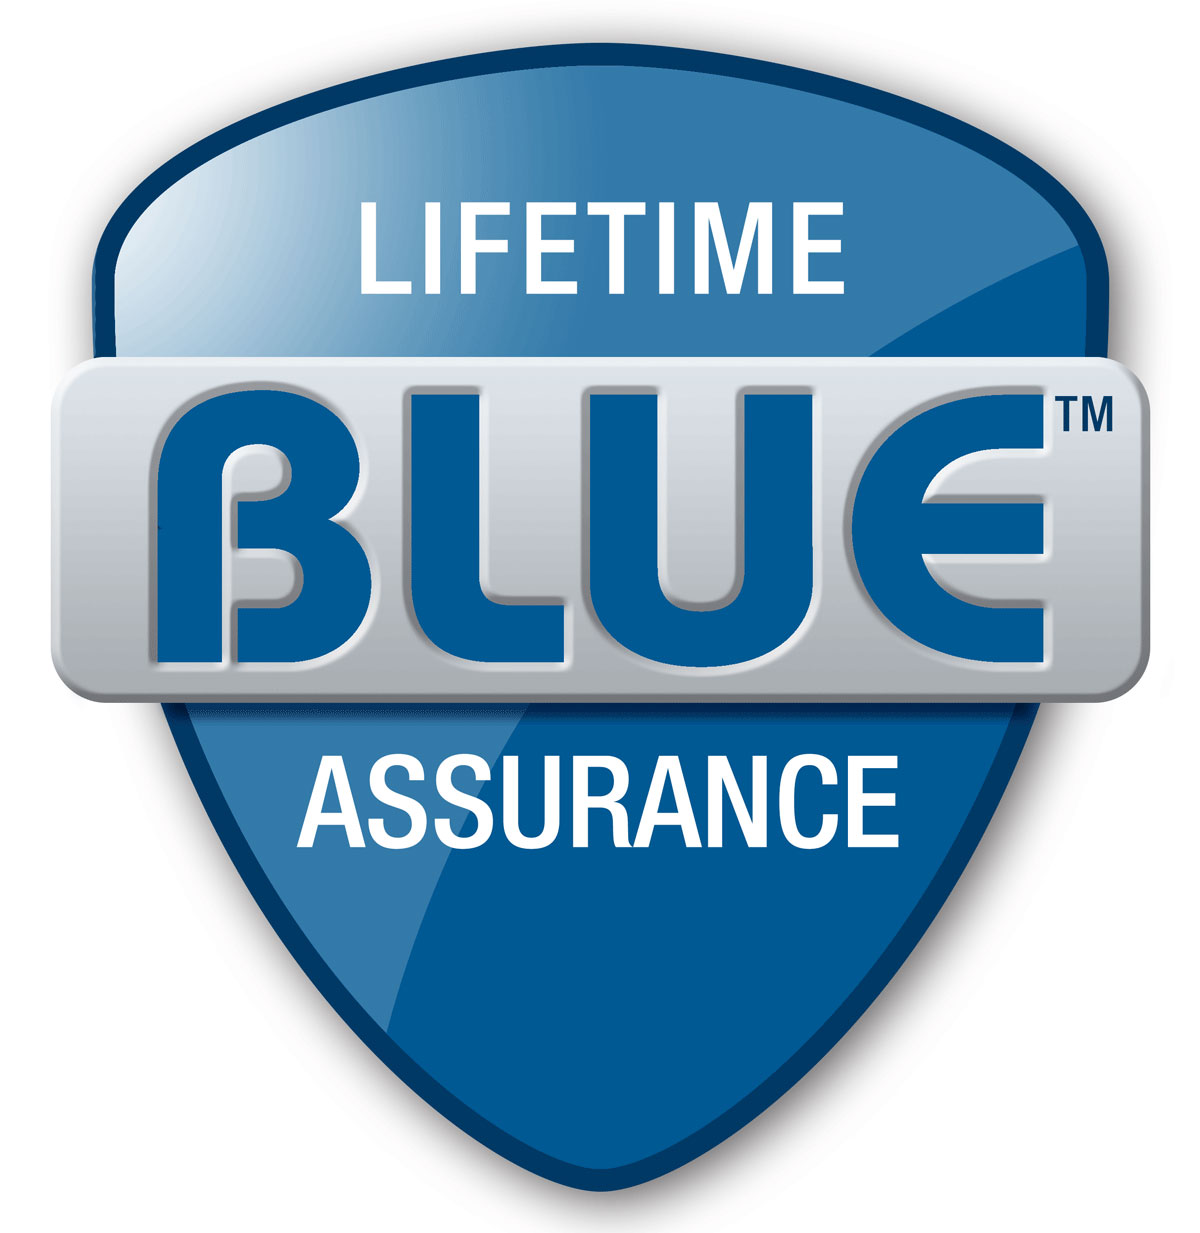 Life time assurance